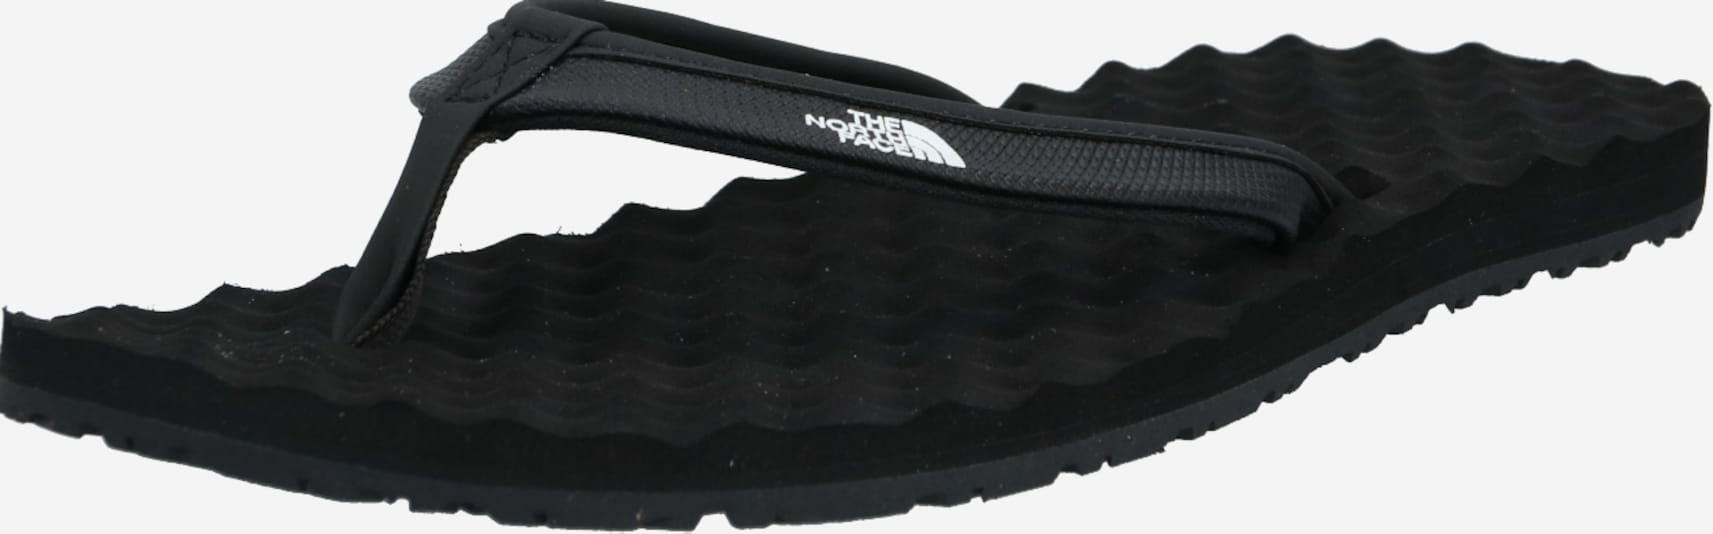 THE NORTH FACE Zehentrenner 'Mini II ' in schwarz / weiß, Produktansicht